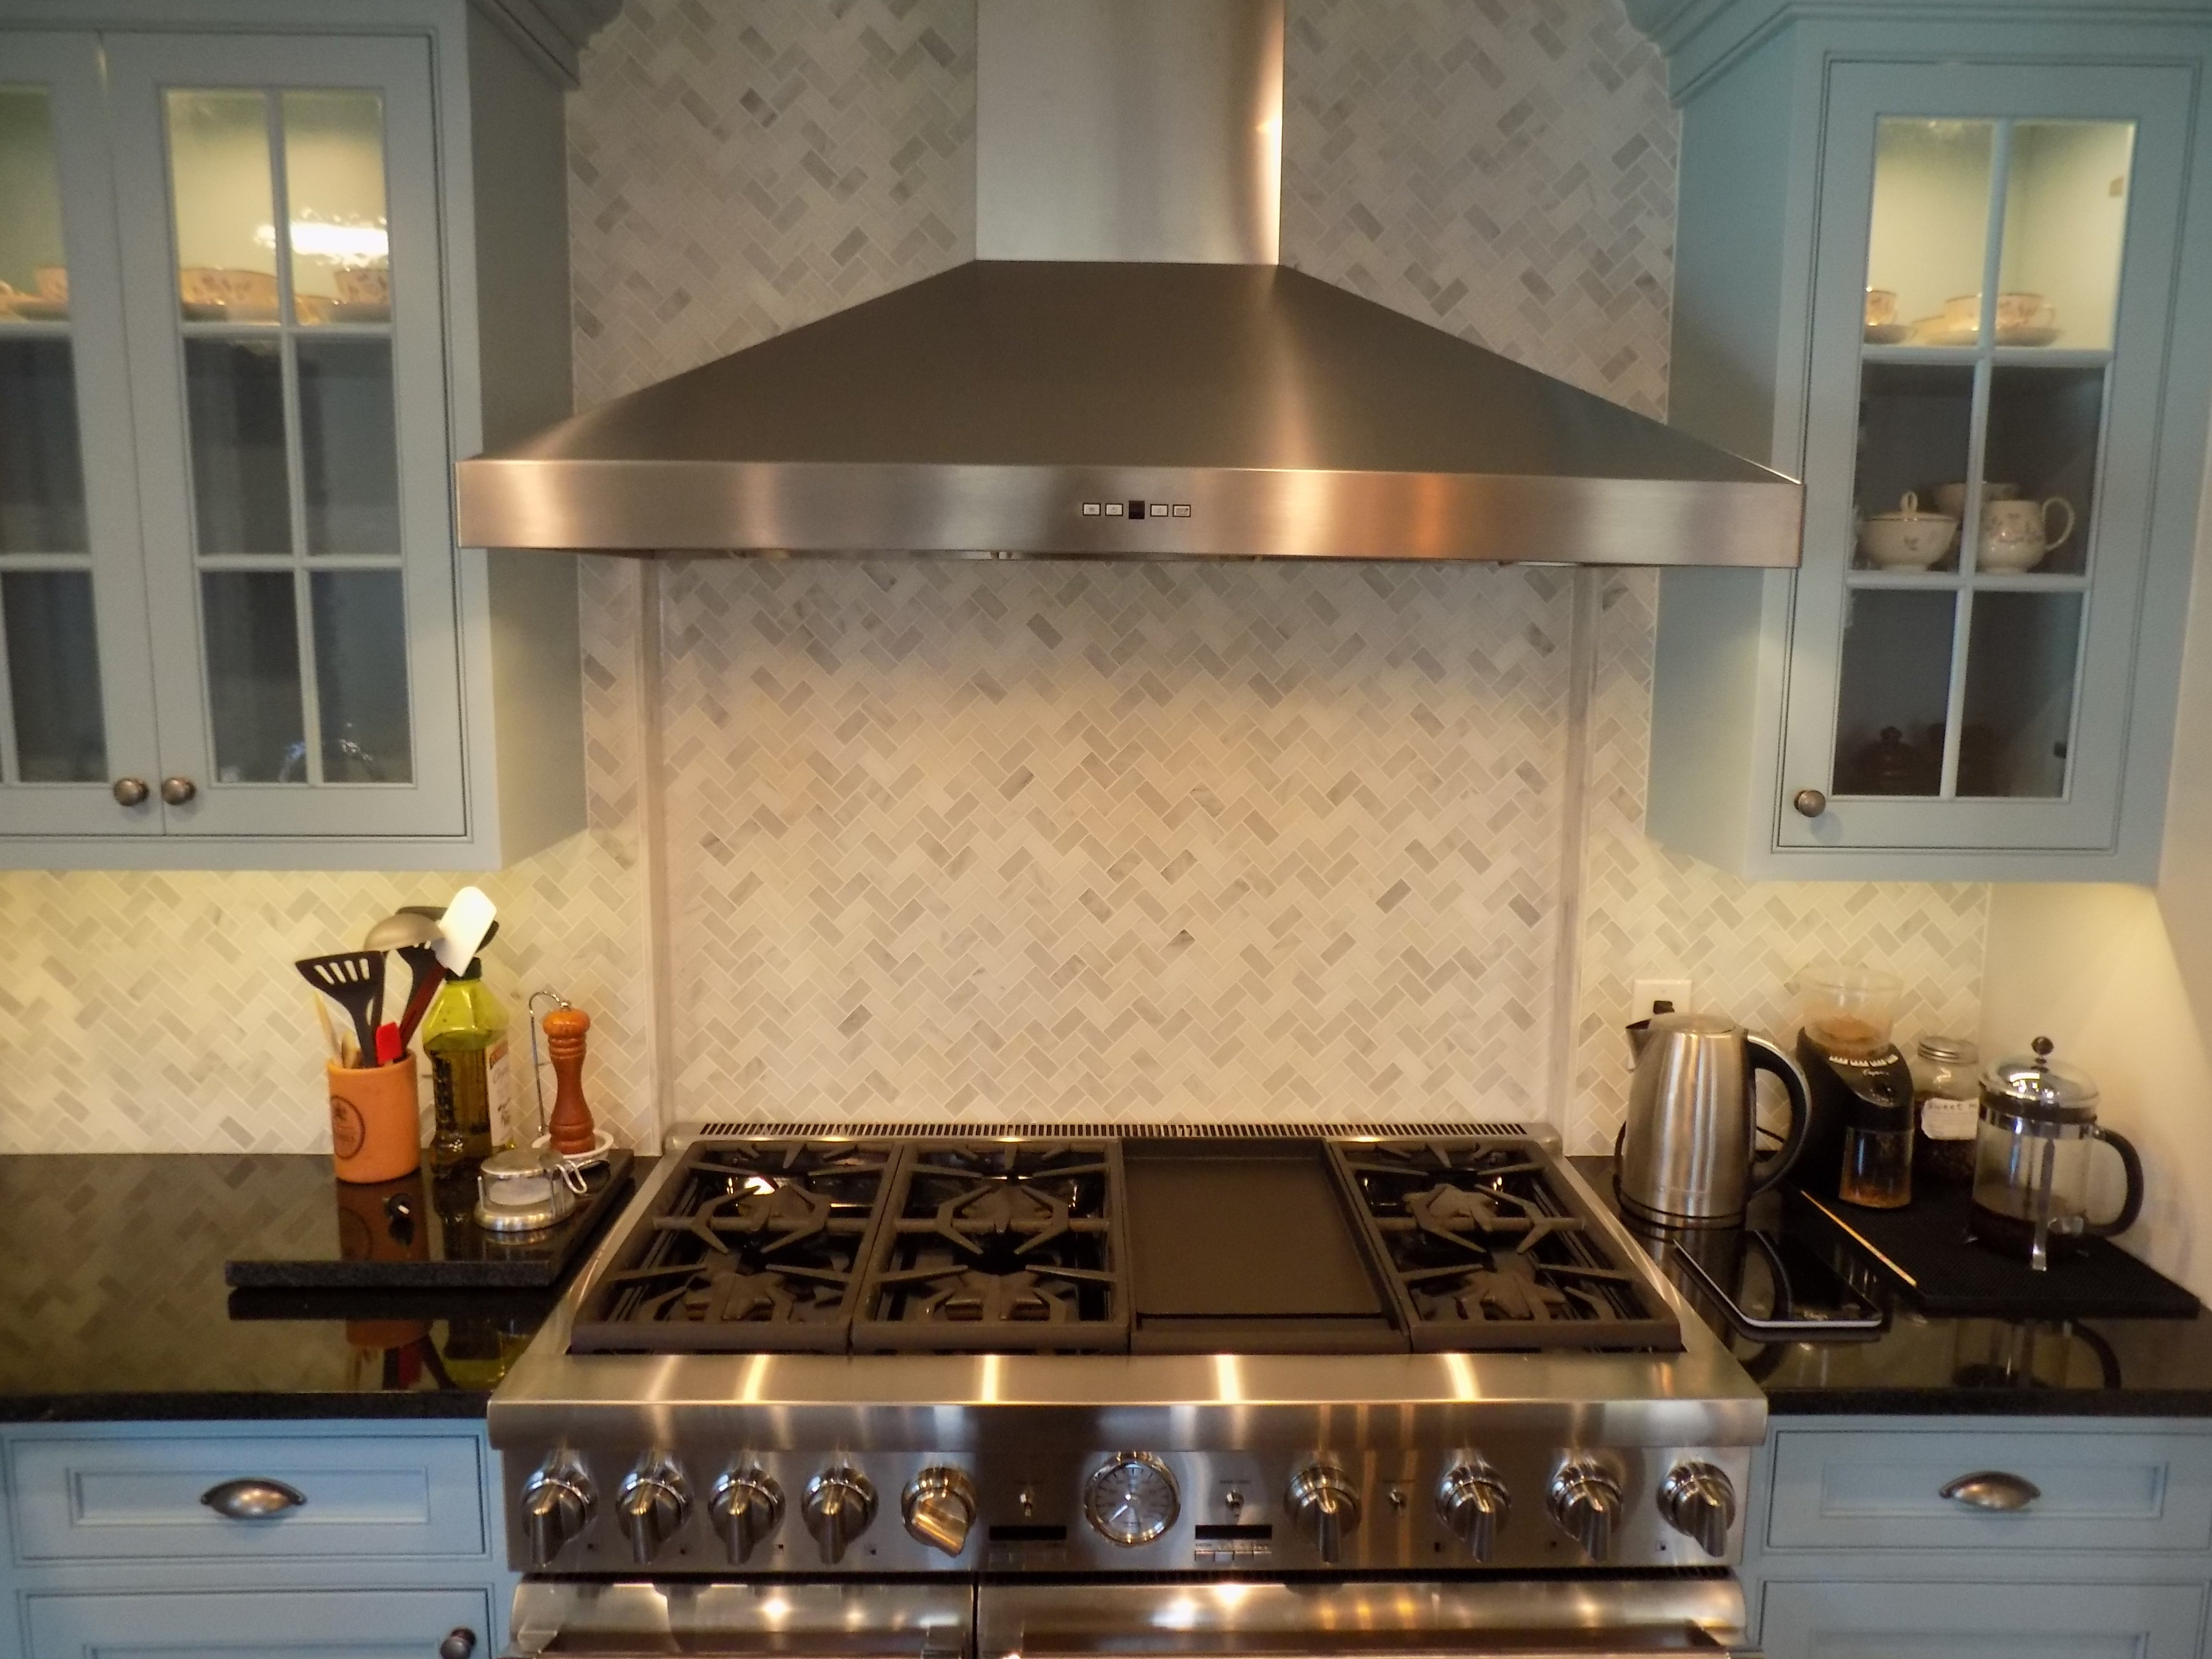 stainless steel 6 burner cooktop stove & double oven